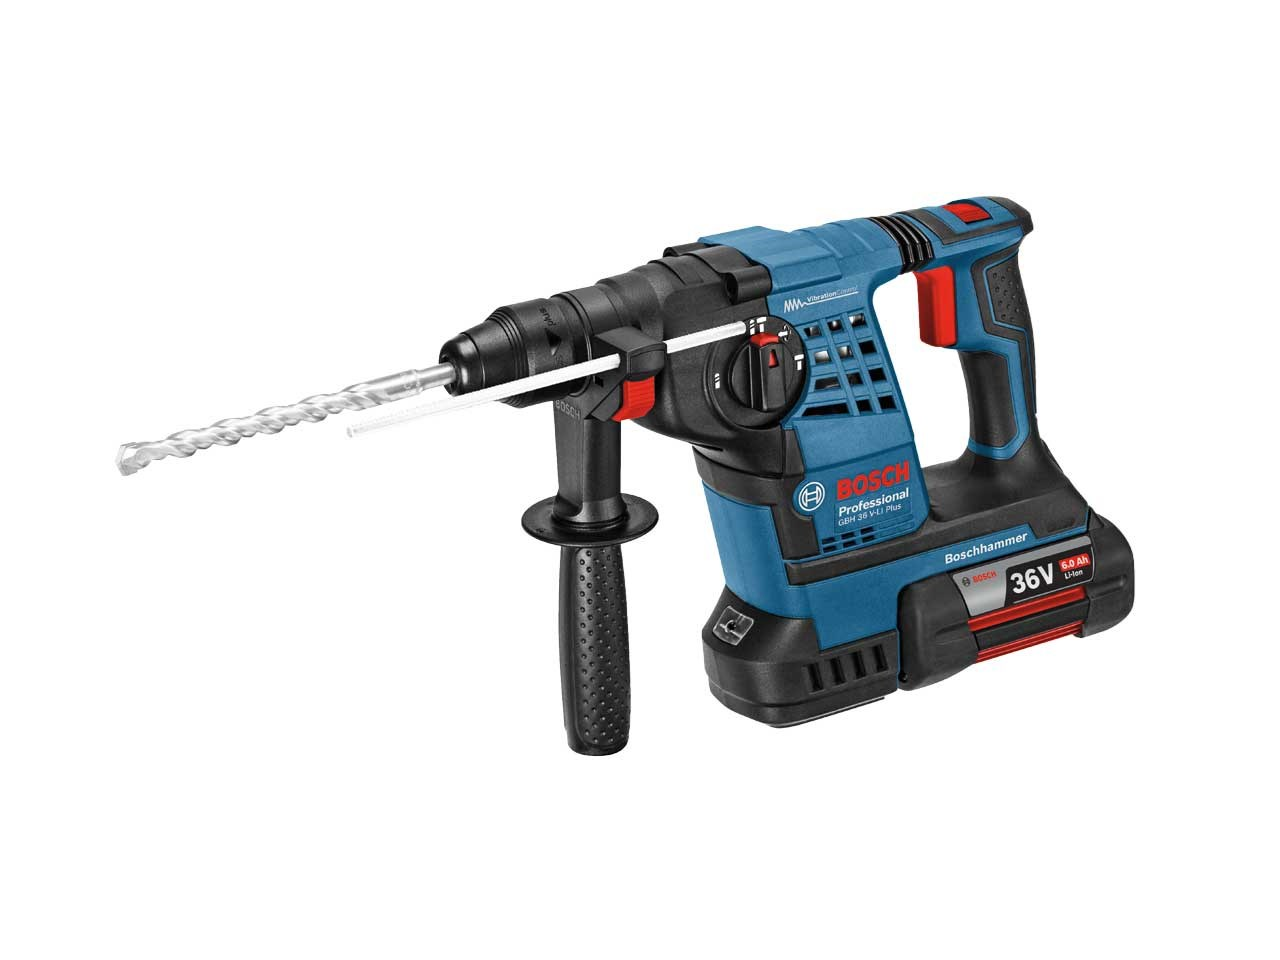 bosch gbh 36 v li plus 36v 2x6 0ah sdsplus professional cordless rotary hammer. Black Bedroom Furniture Sets. Home Design Ideas